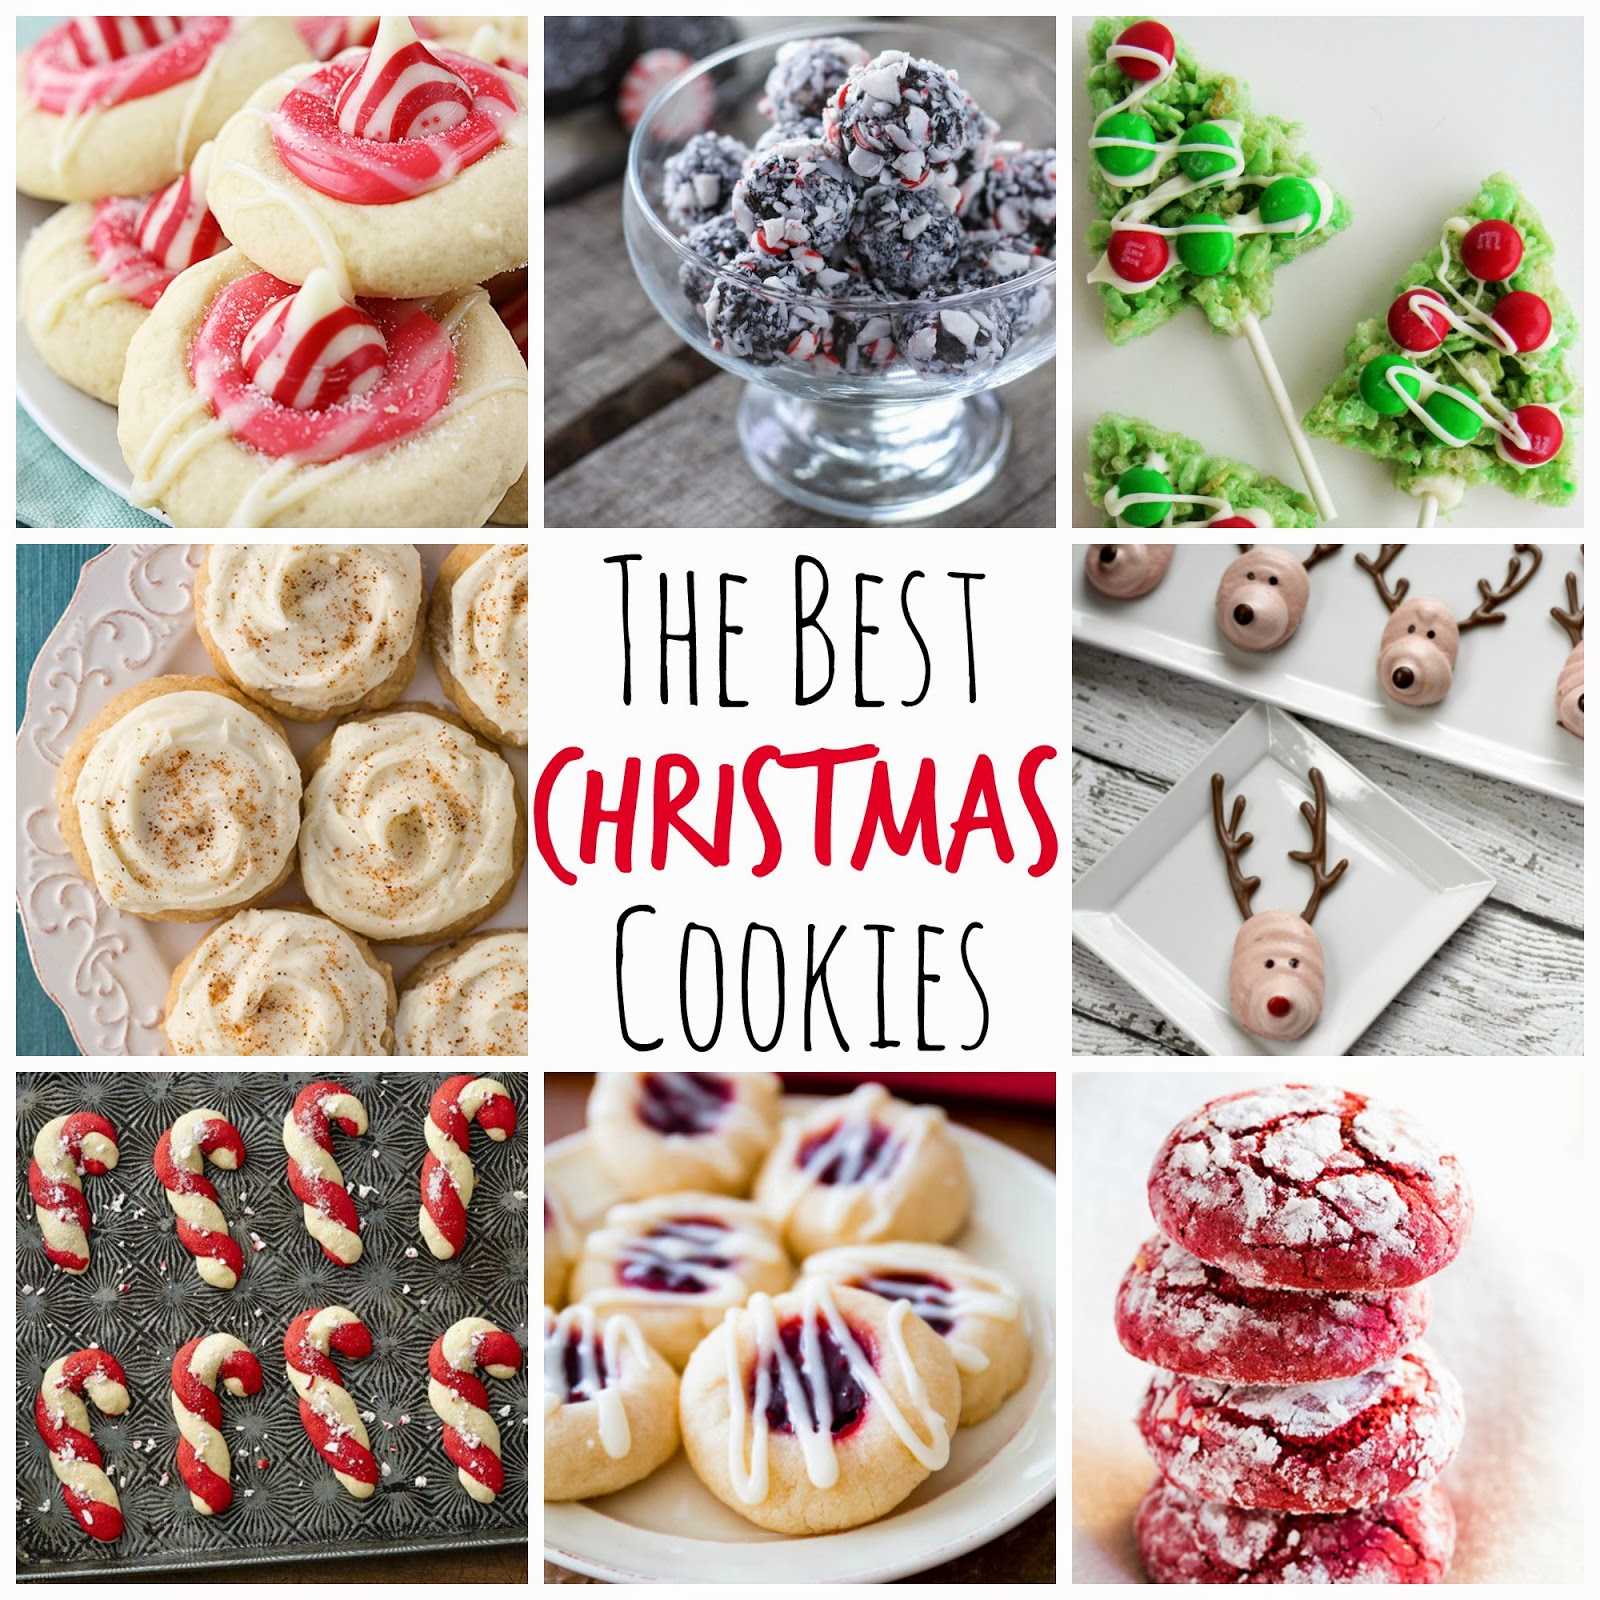 the best christmas cookie recipes melissa kaylene - Best Christmas Cookies 2014